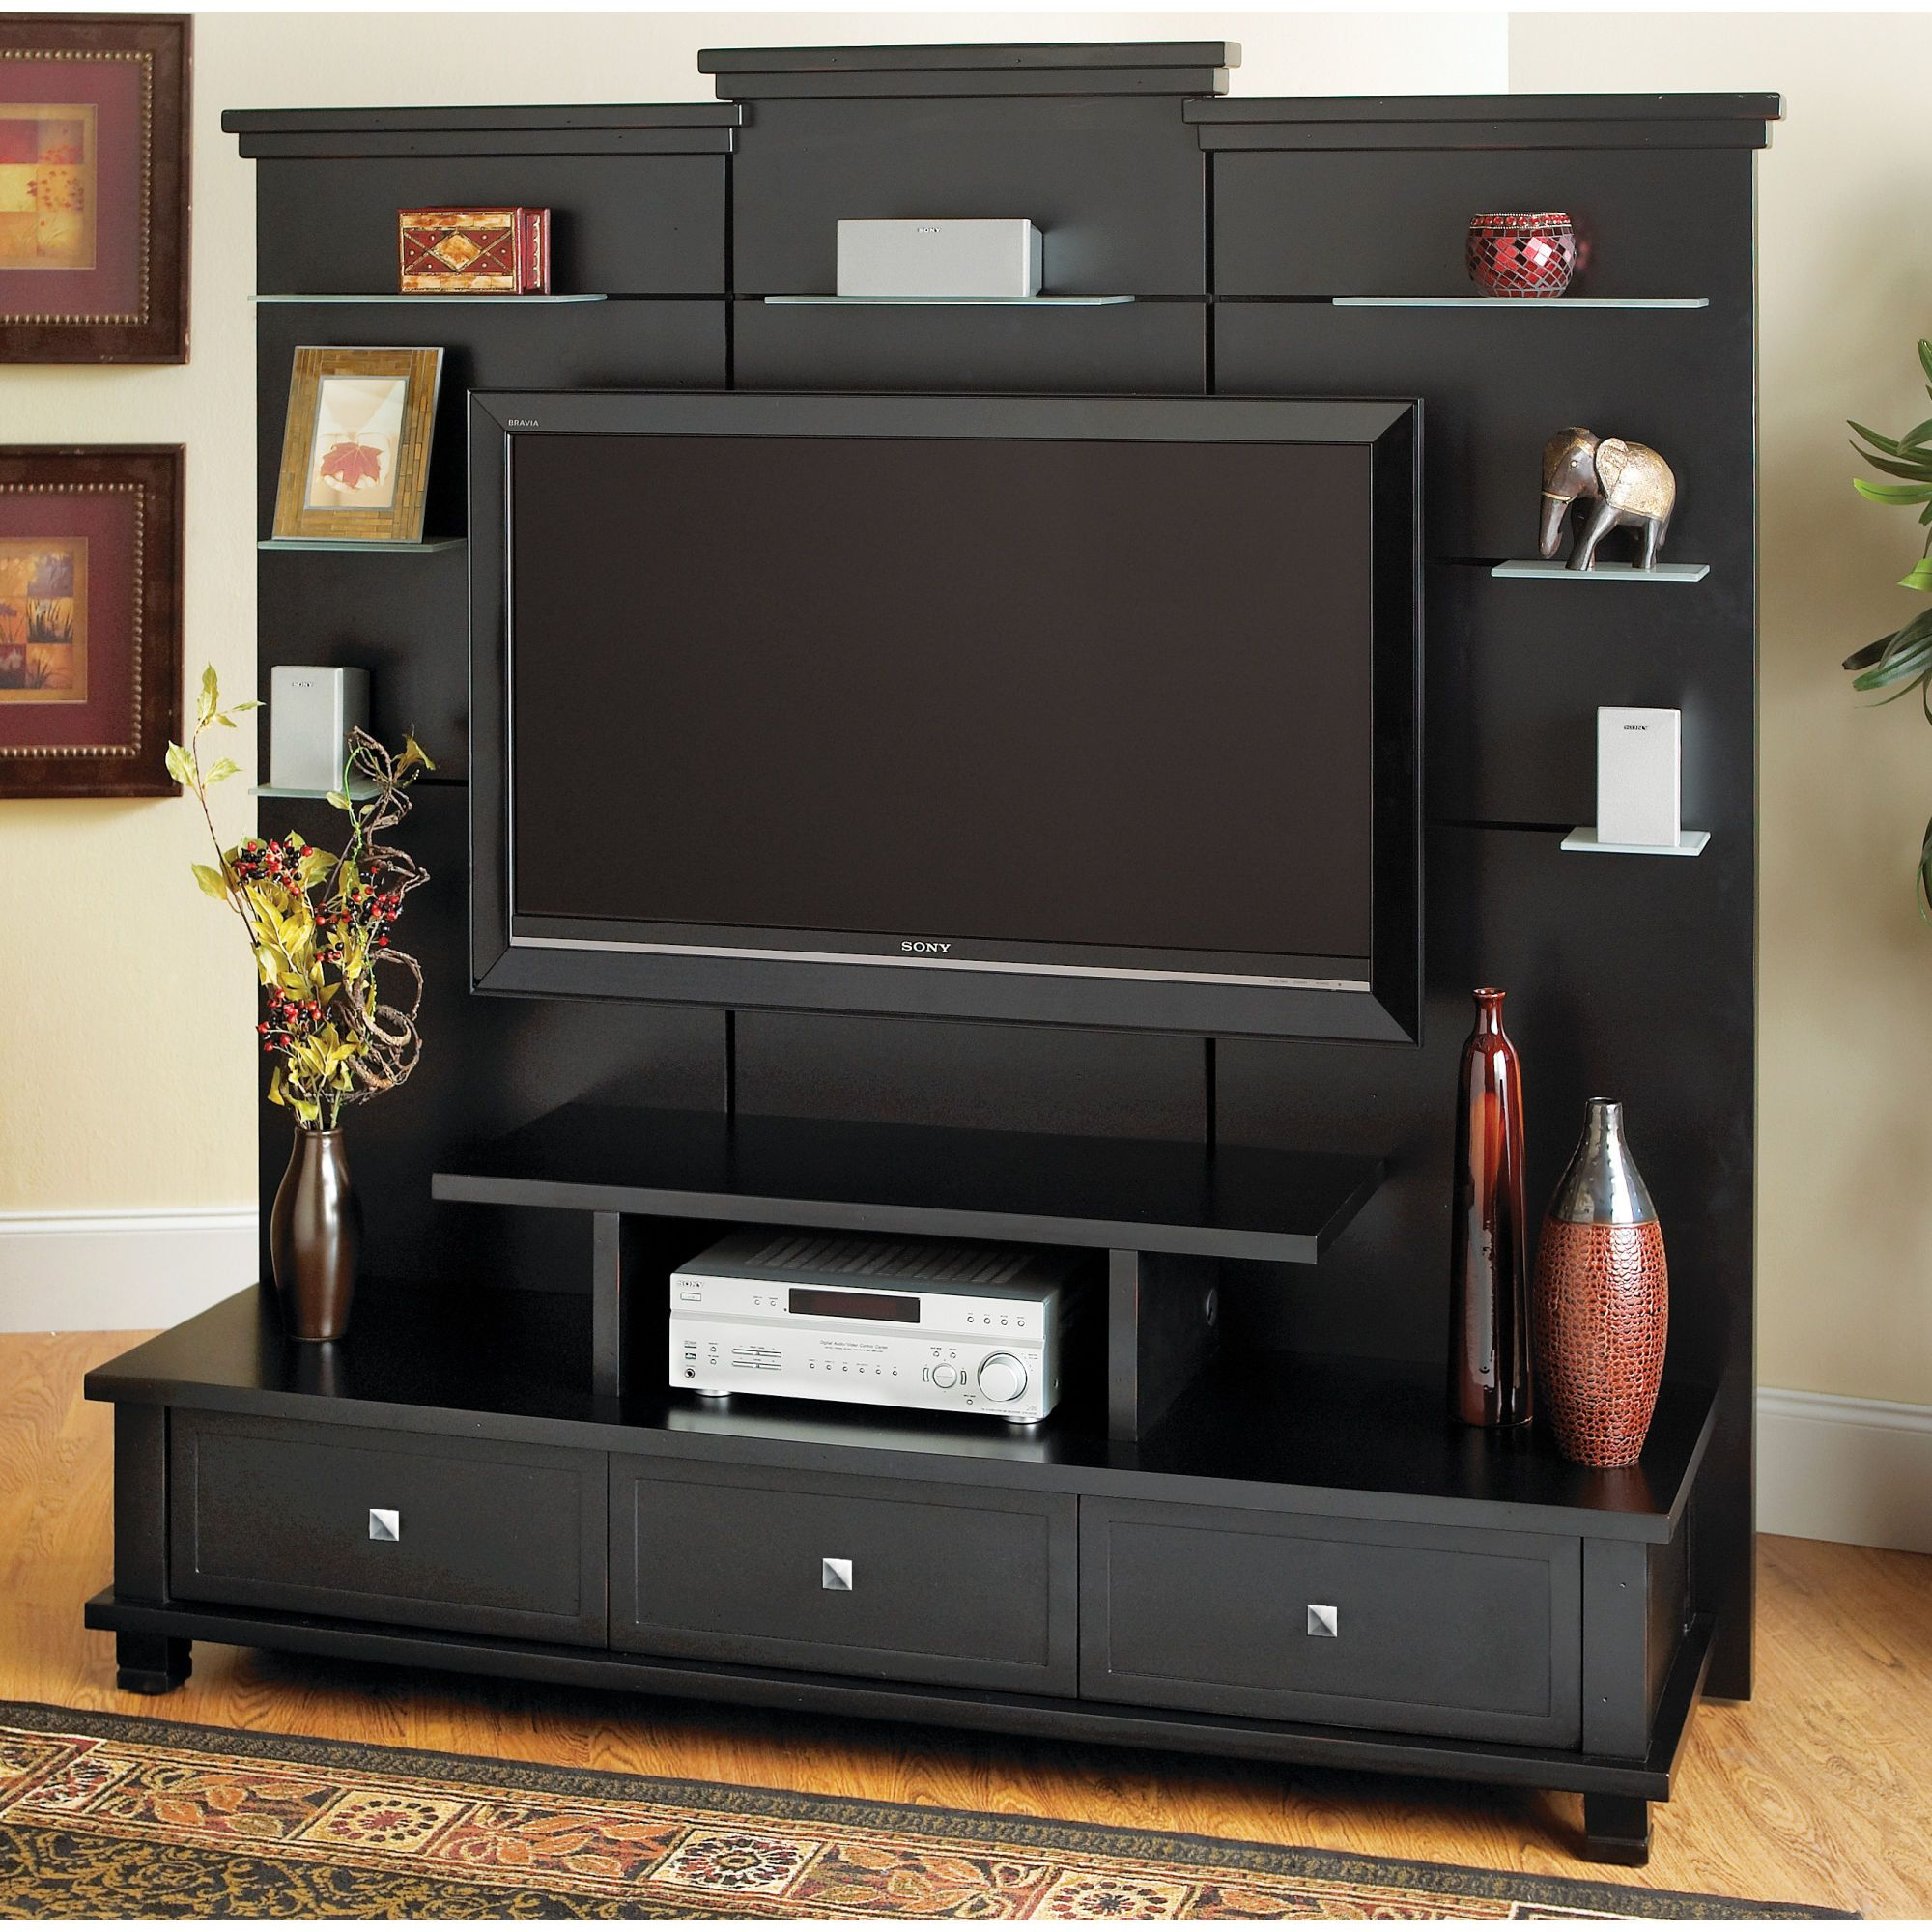 Entertainment center check walmart for cheaper price sweet homey